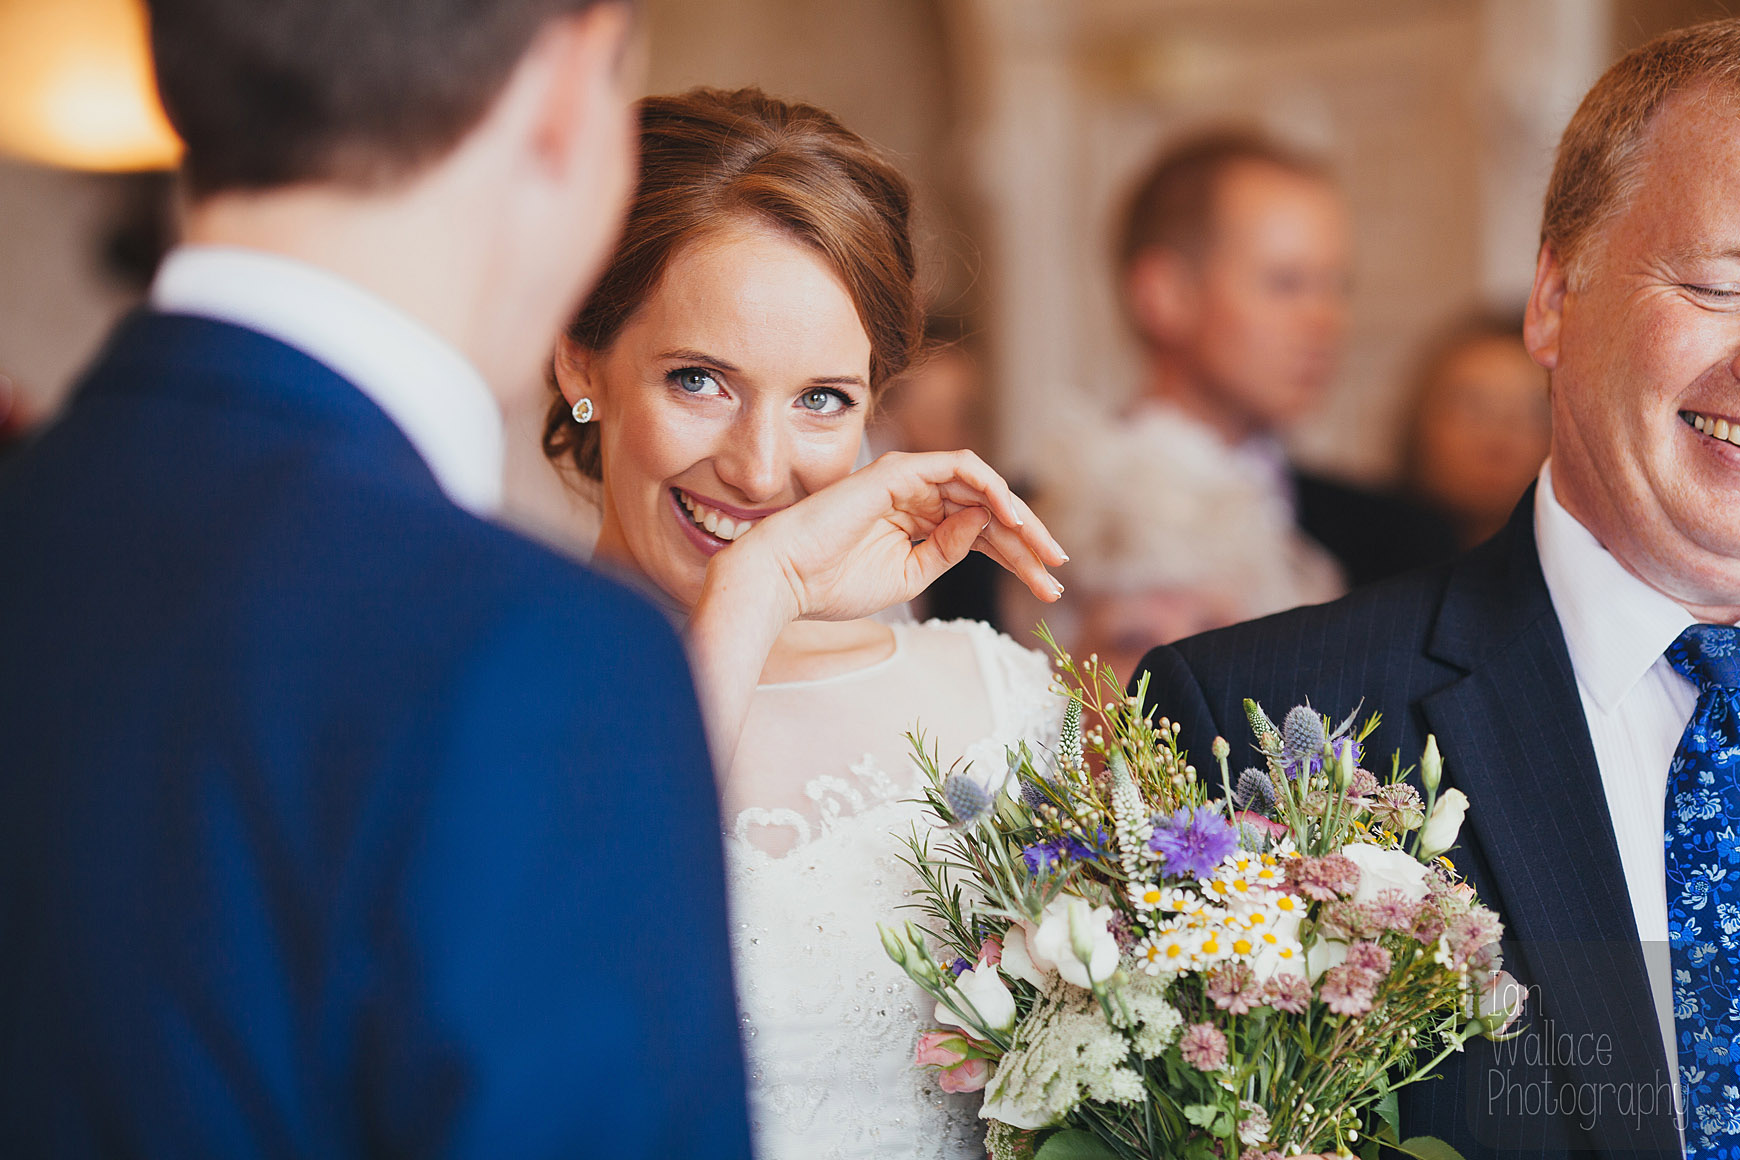 Tender moment as bride and groom see each other for the first time.